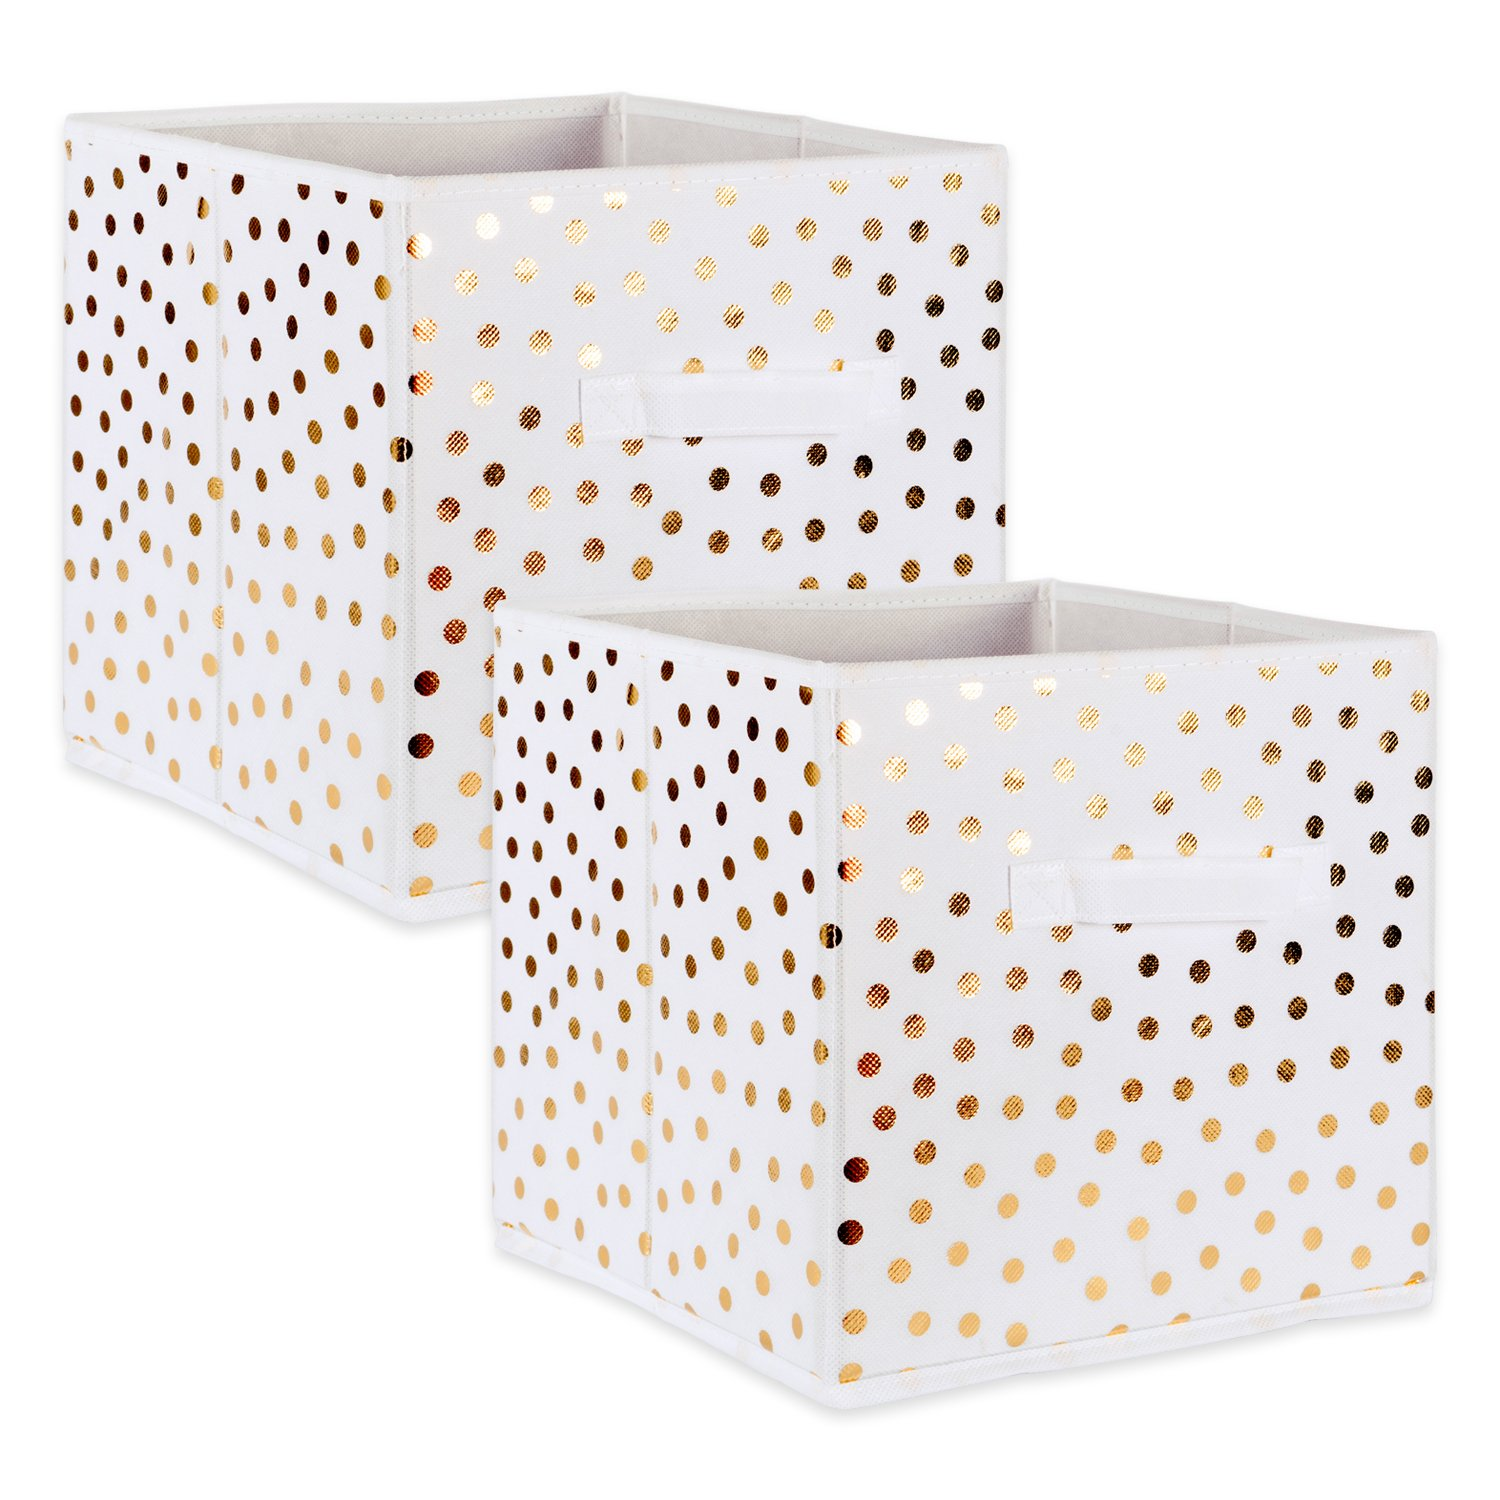 """DII Fabric Storage Bins for Nursery, Offices, & Home Organization, Containers Are Made To Fit Standard Cube Organizers (13x13x13"""") White with Gold Dots - Set of 2"""